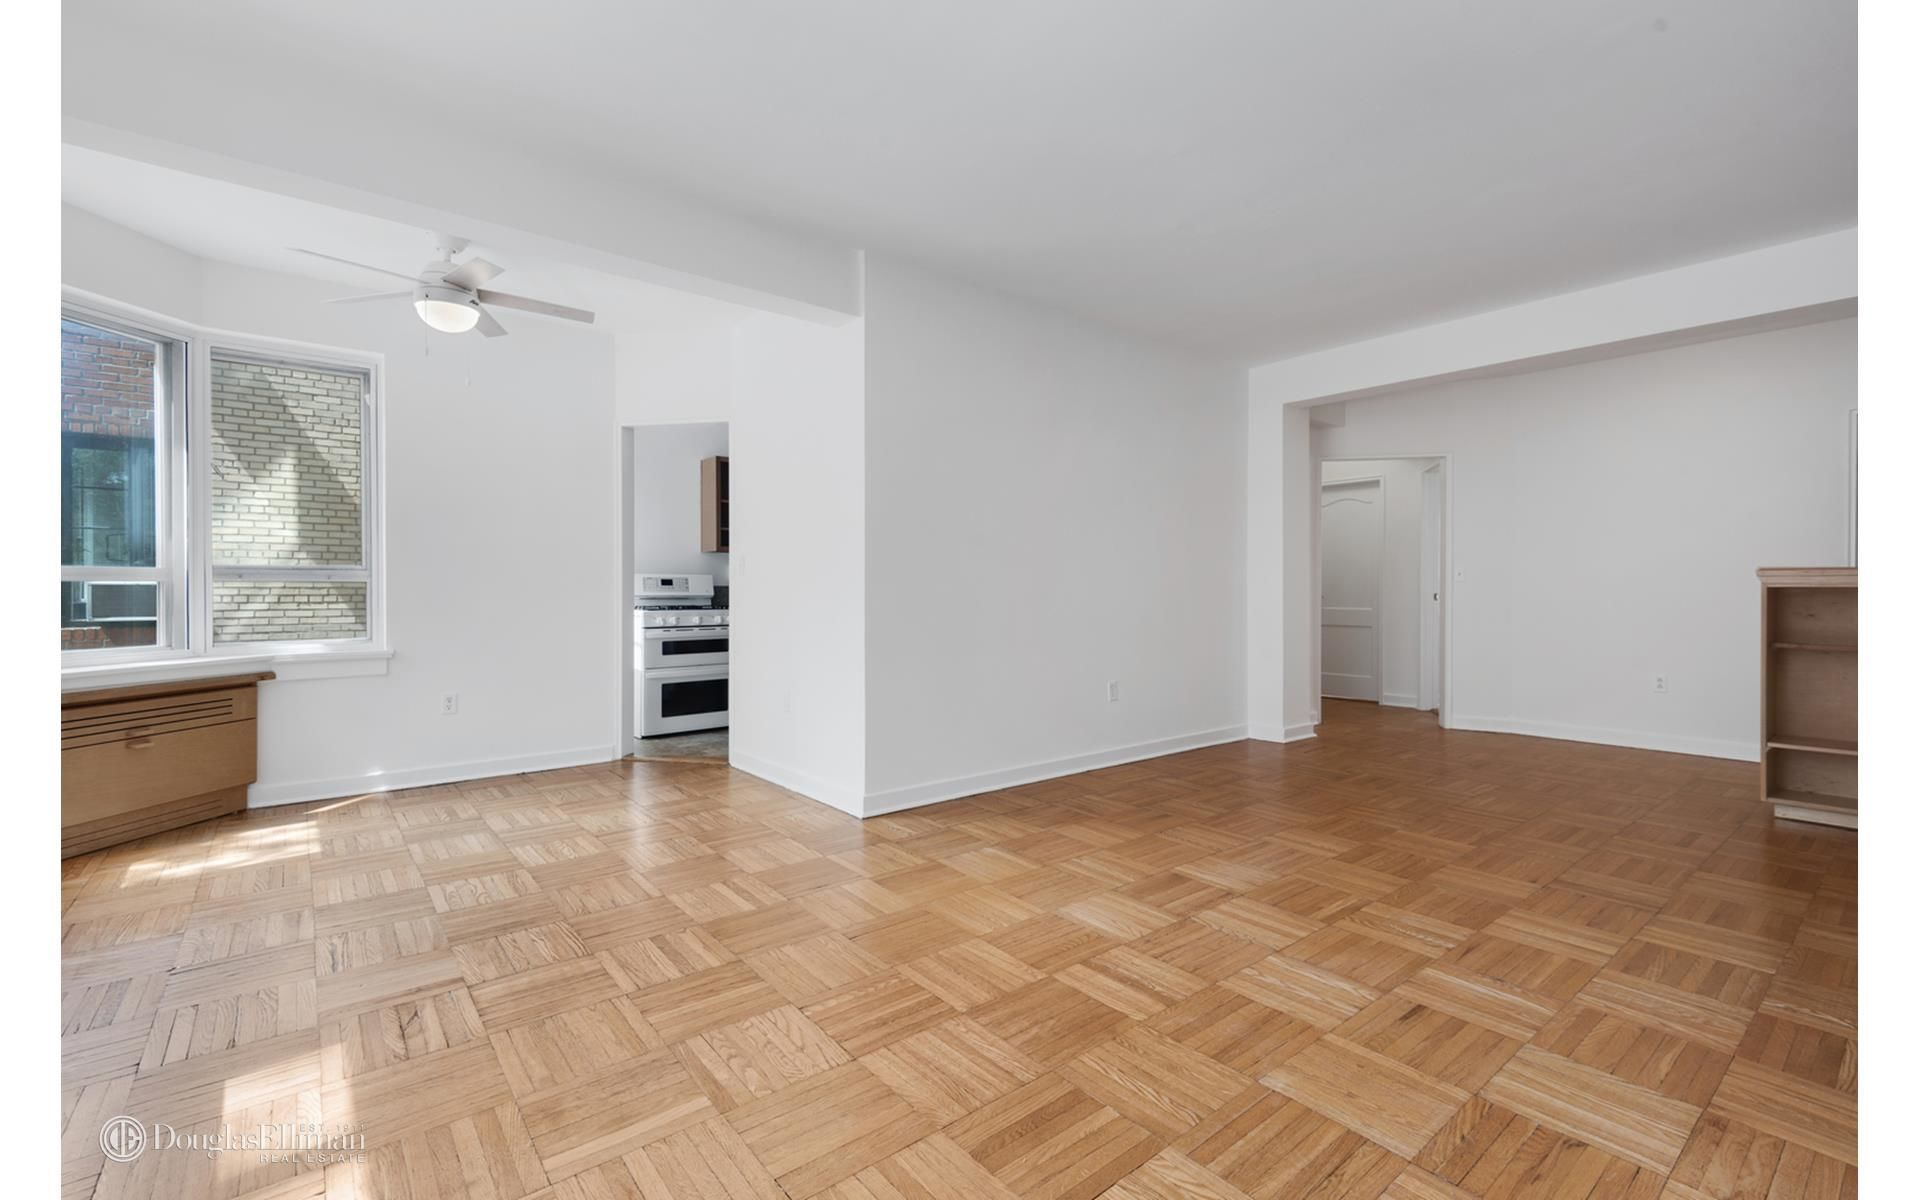 130 8th Ave, APT 2A Photo 6 - ELLIMAN-3787631